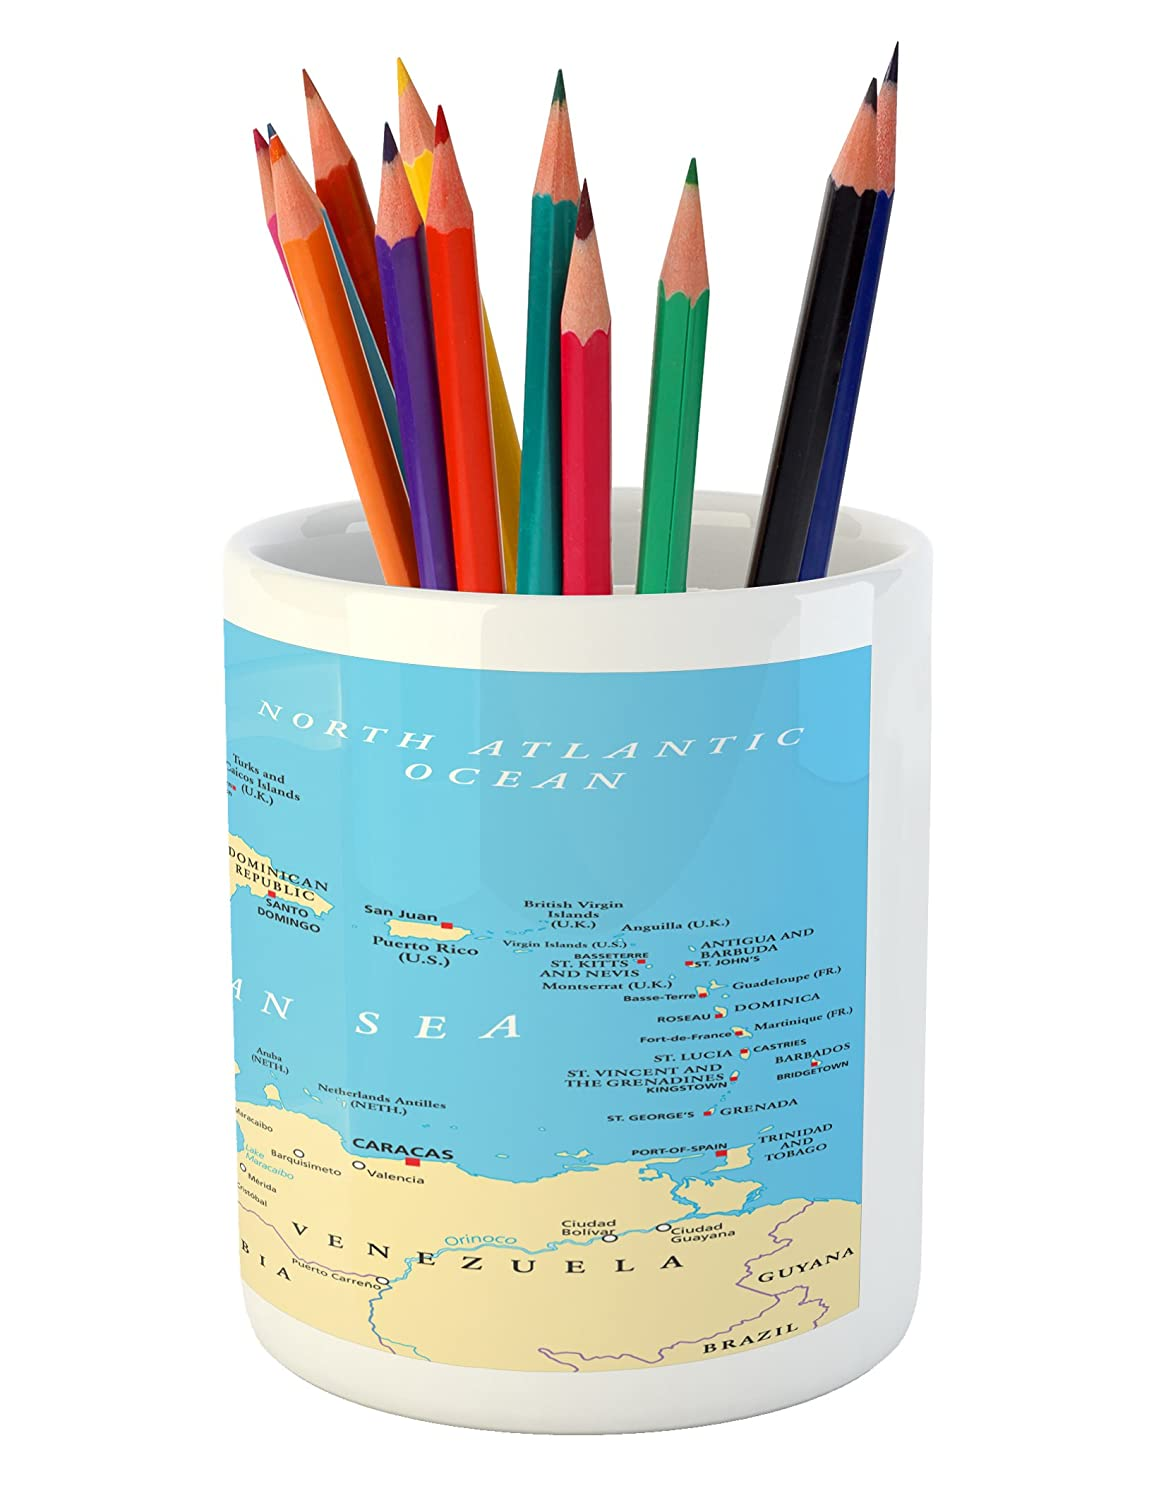 Amazon.com: Ambesonne Wanderlust Pencil Pen Holder, Caribbean Political Map Capitals National Borders Important Cities Rivers Lakes, Printed Ceramic Pencil ...